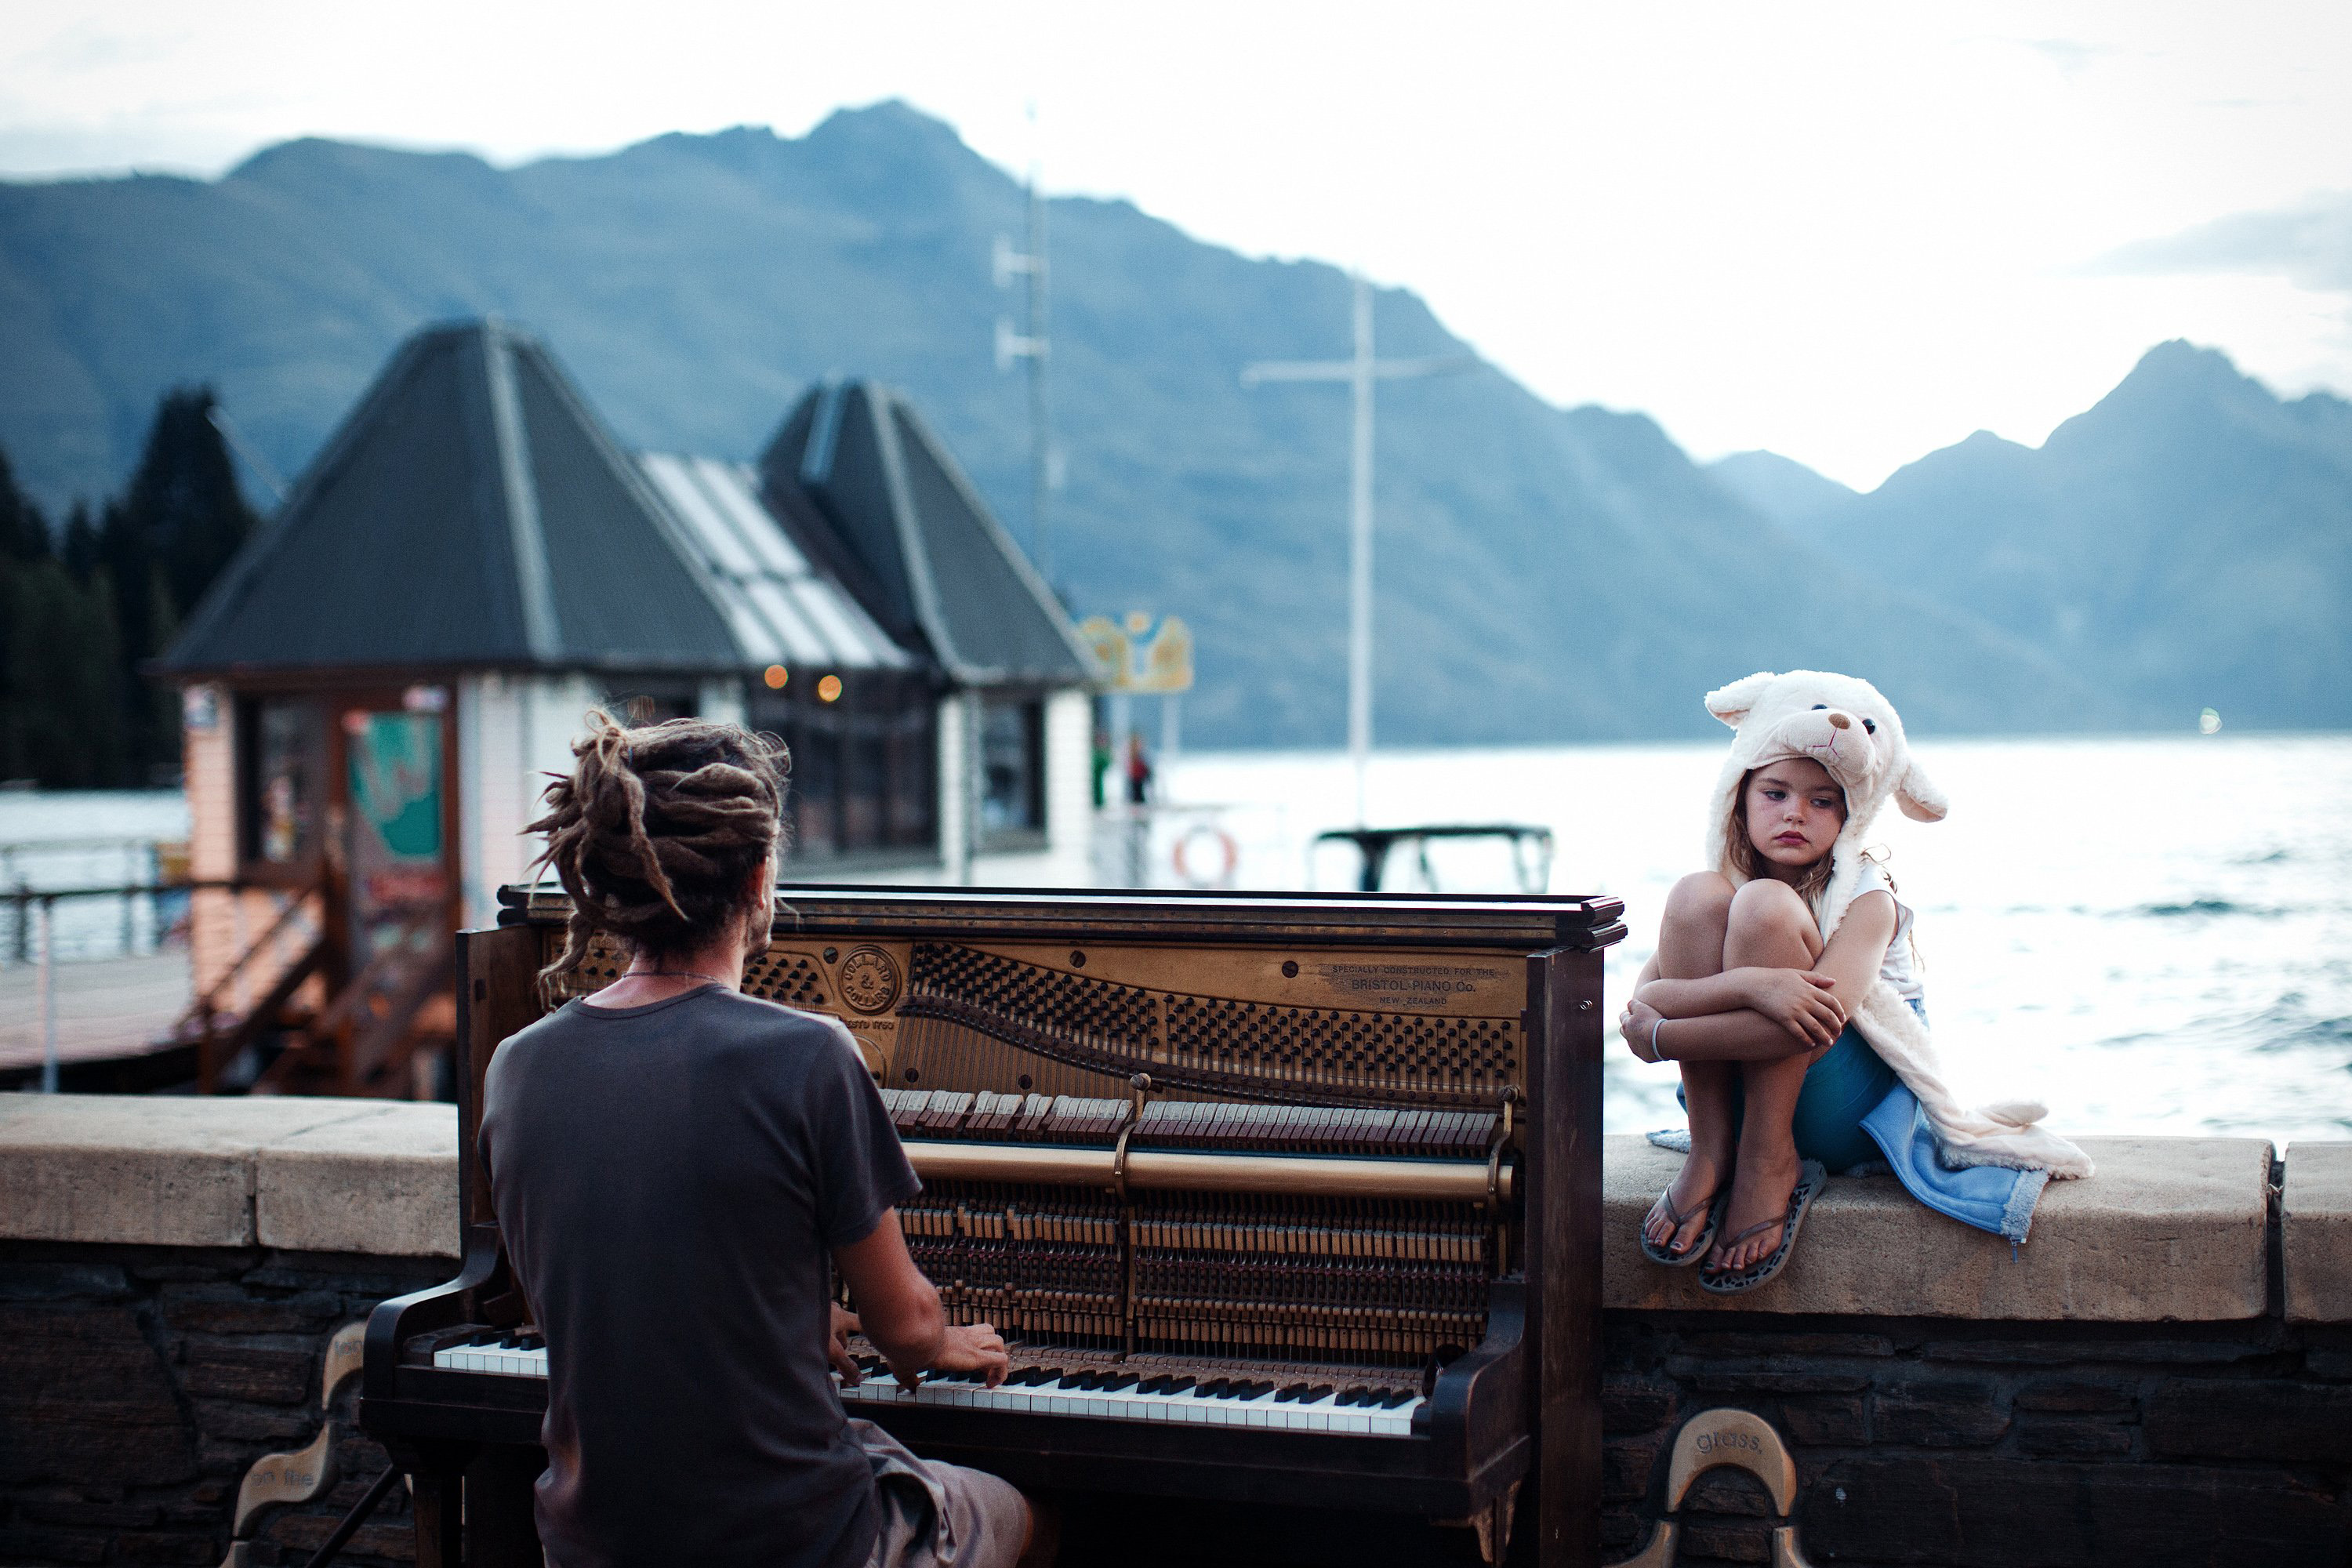 Piano play at sunset - Streets of Queenstown, New Zealand at the end of one more day filled with adrenaline. Calming and doleful scene with piano sound in the background. (Nikola Smernic/National Geographic Traveler Photo Contest)